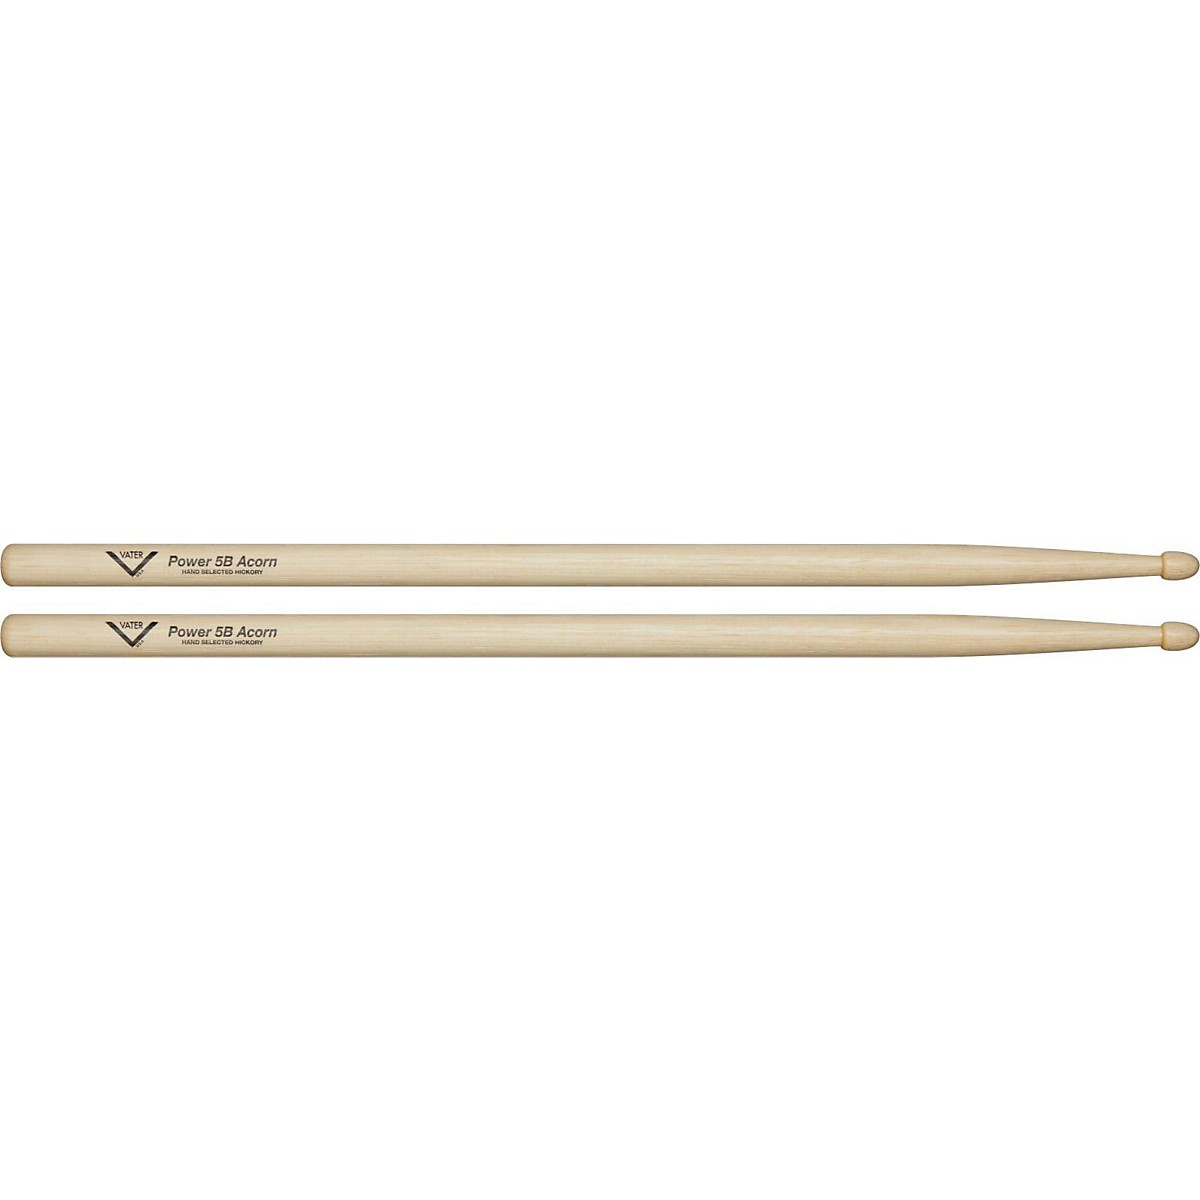 Vater Power 5B Acorn Tip Drum Sticks